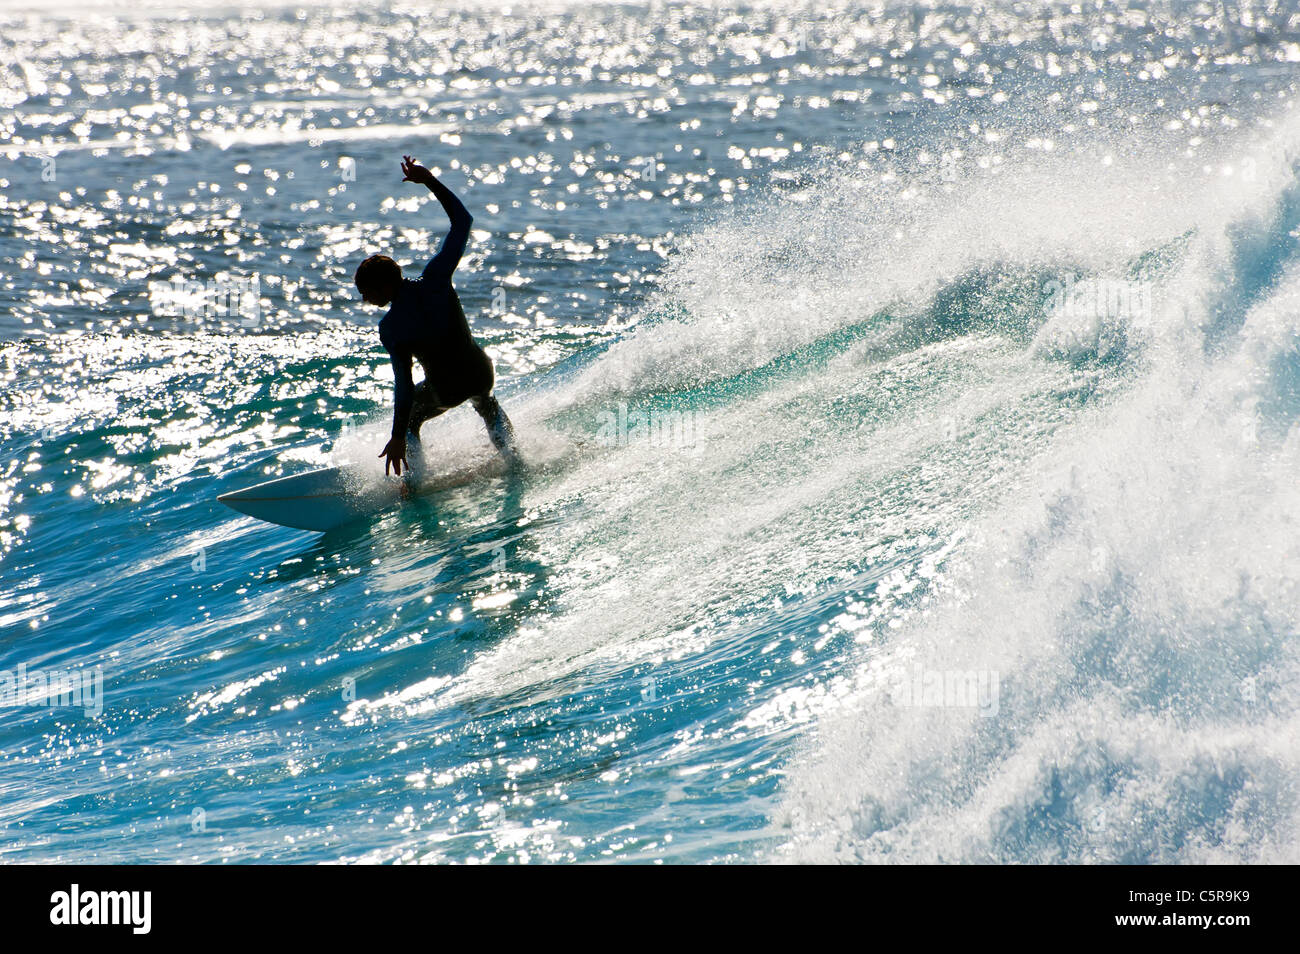 A surfer carving a sparkling wave. - Stock Image